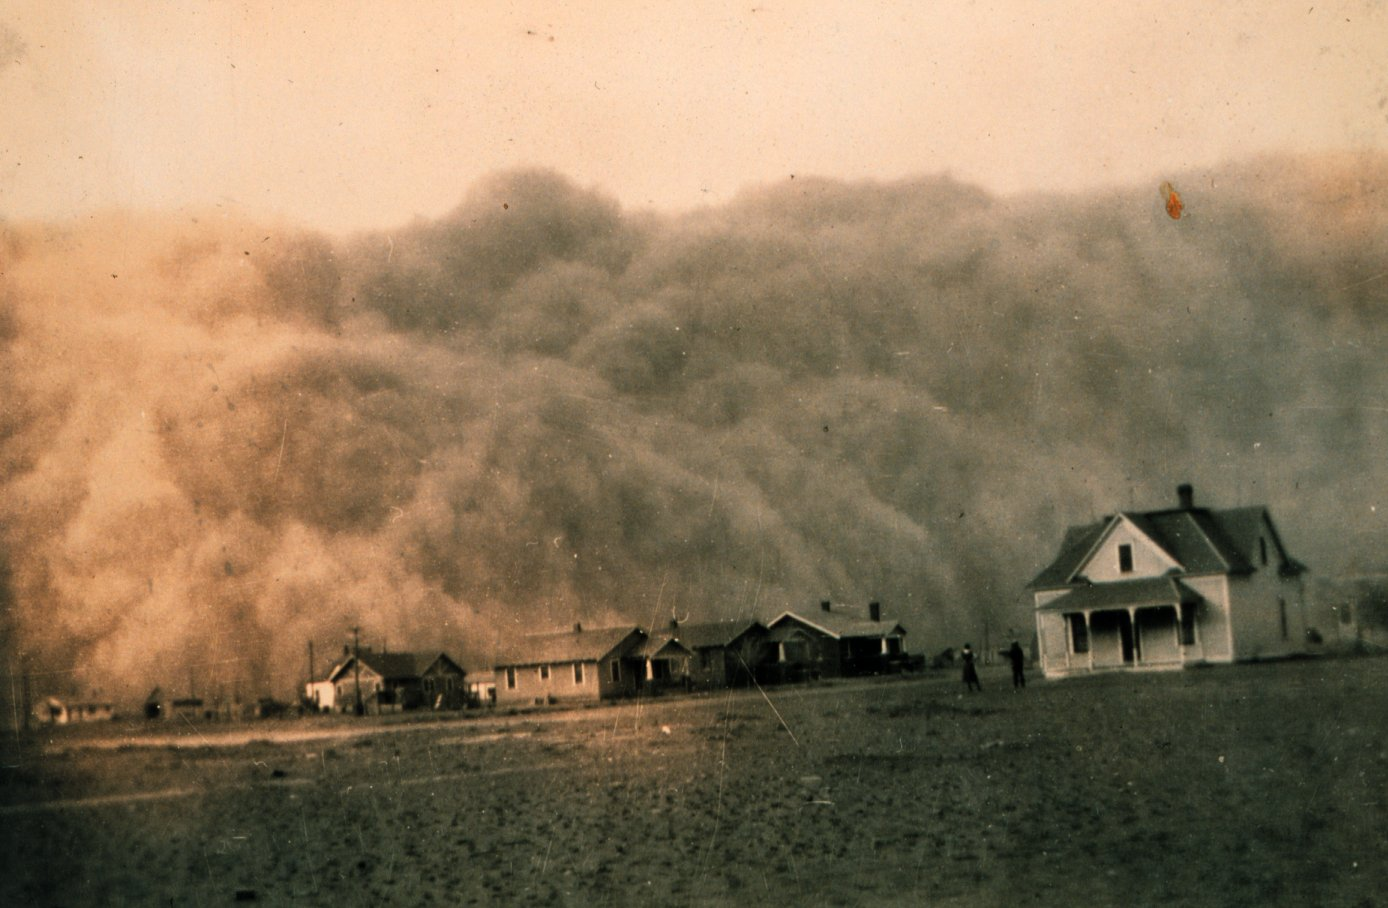 Dust storm approaching Stratford, Texas. NOAA Photo Library, Historic NWS Collection.